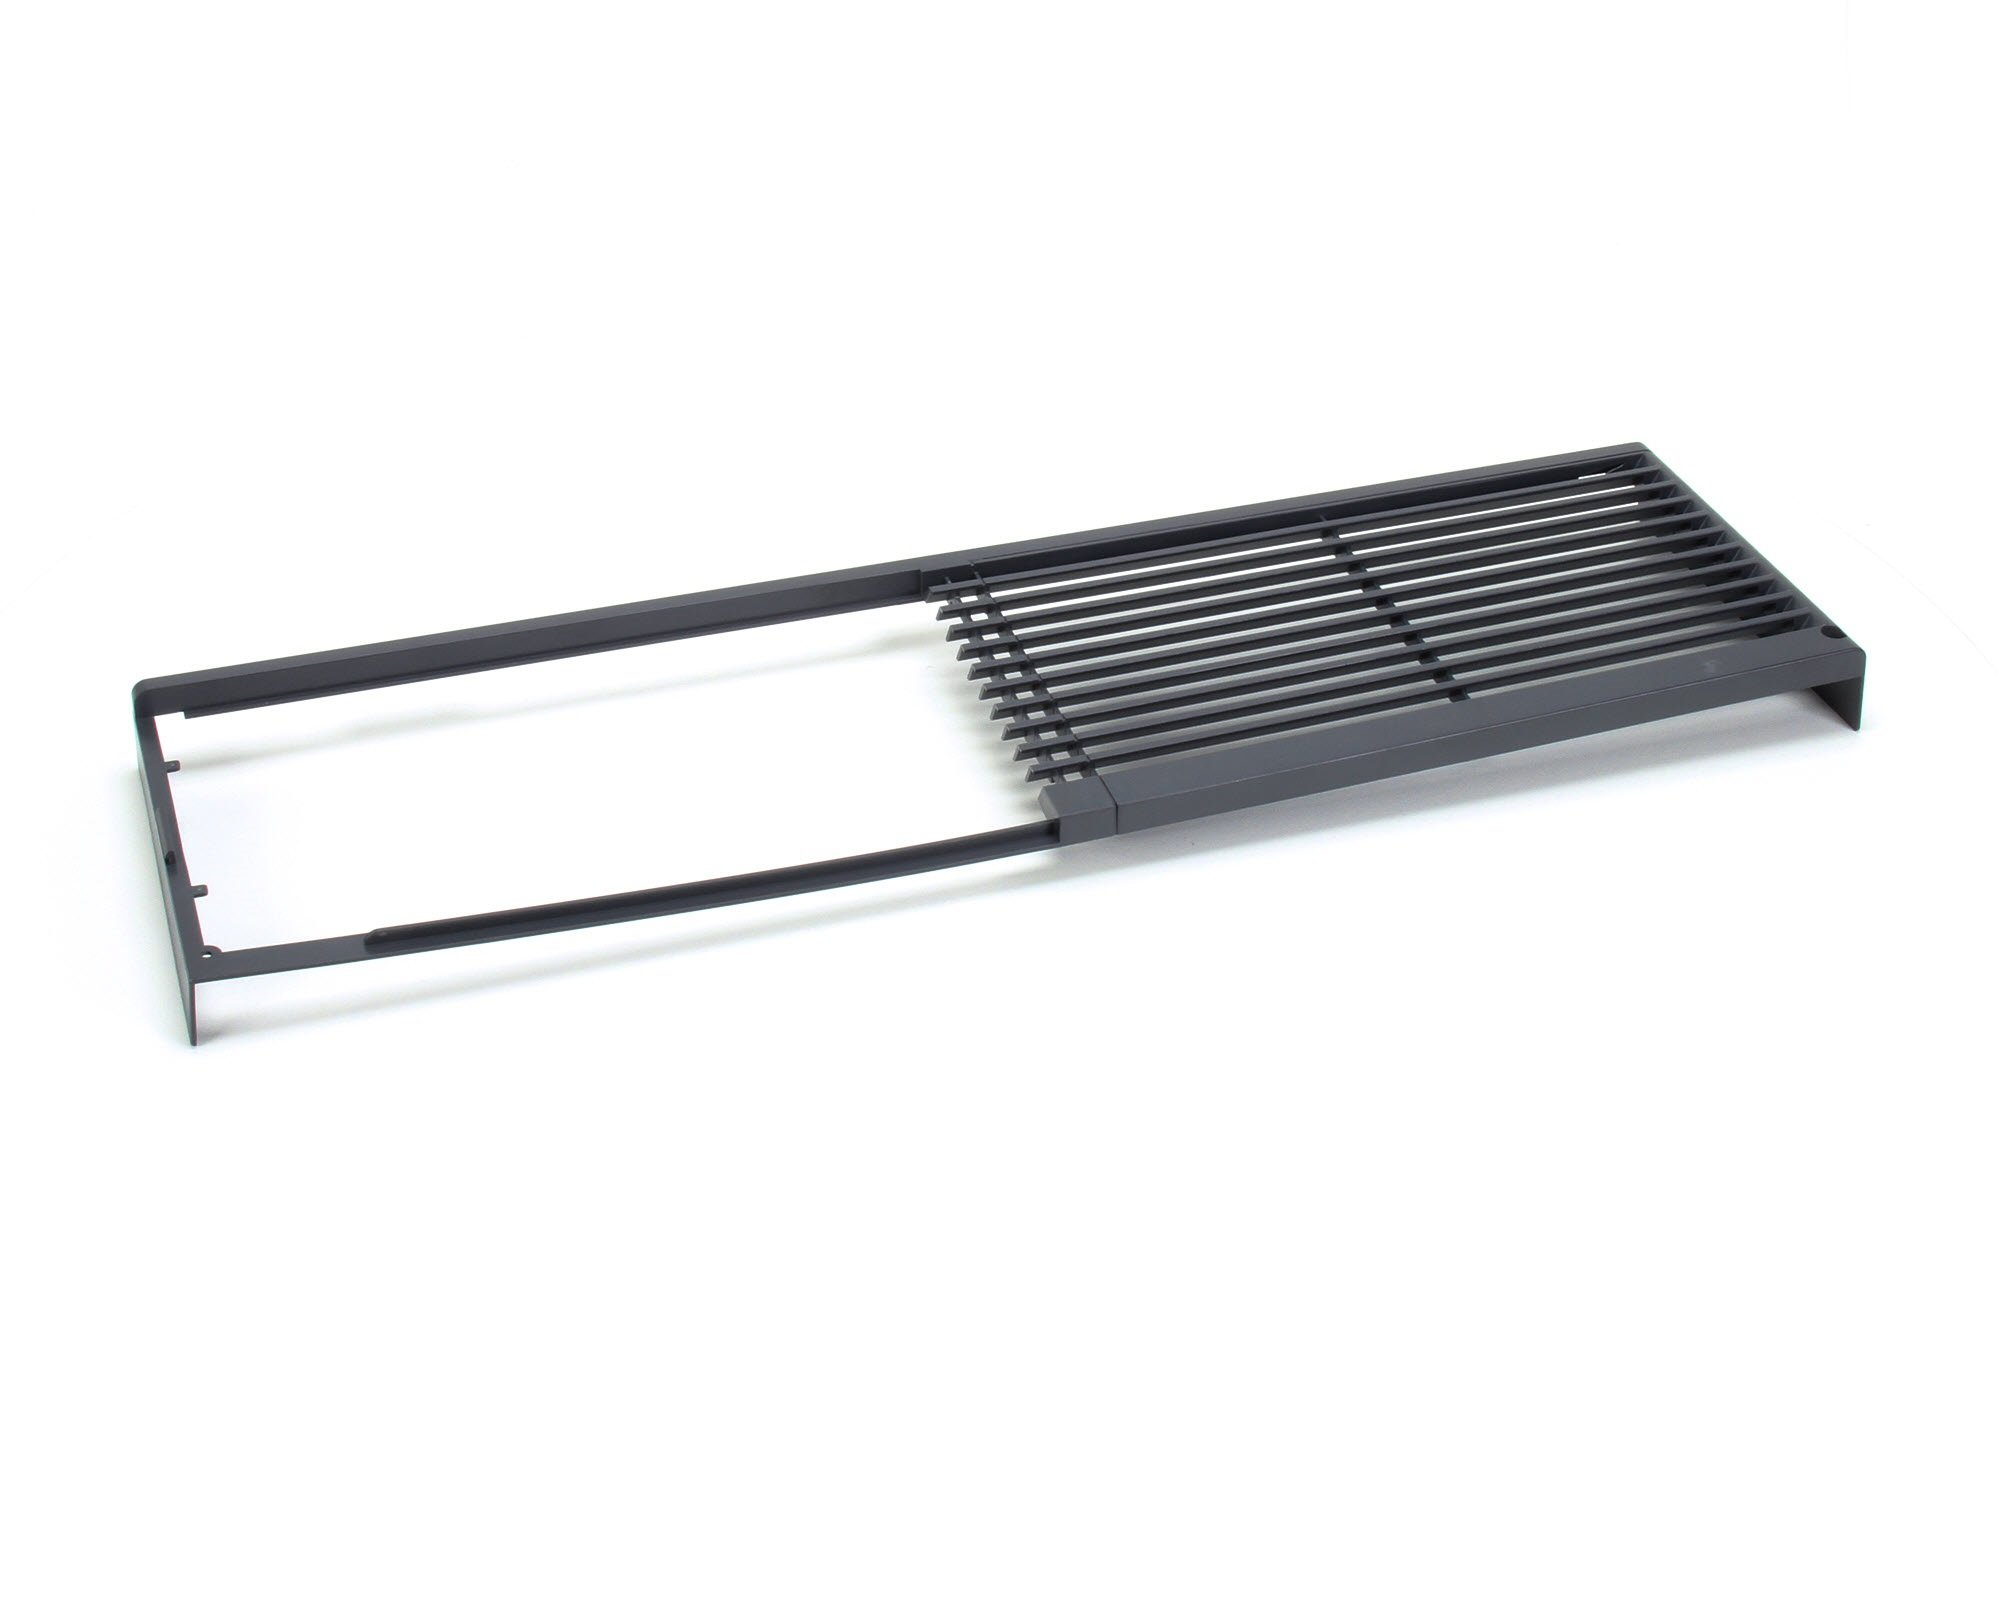 Scotsman 02-4303-01 Grill Frame for CU30